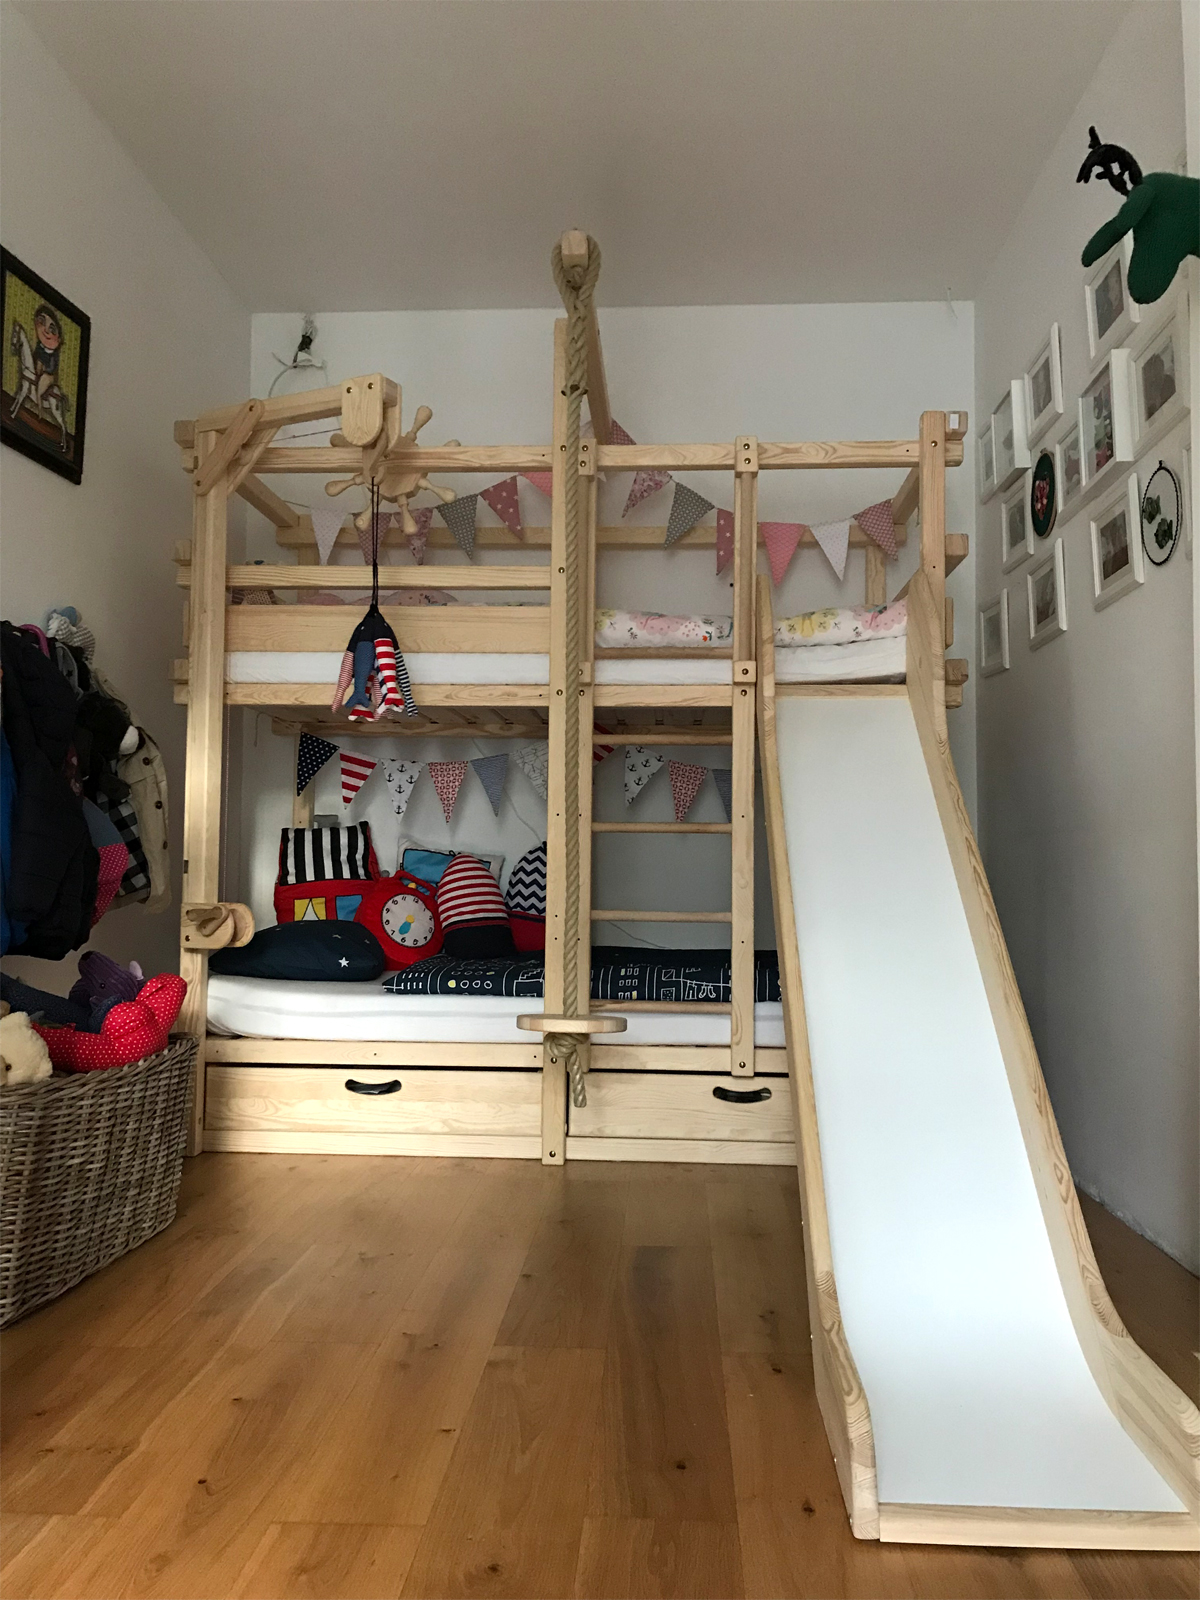 A real photo of MONTEREY bunk bed by Barbora (1)